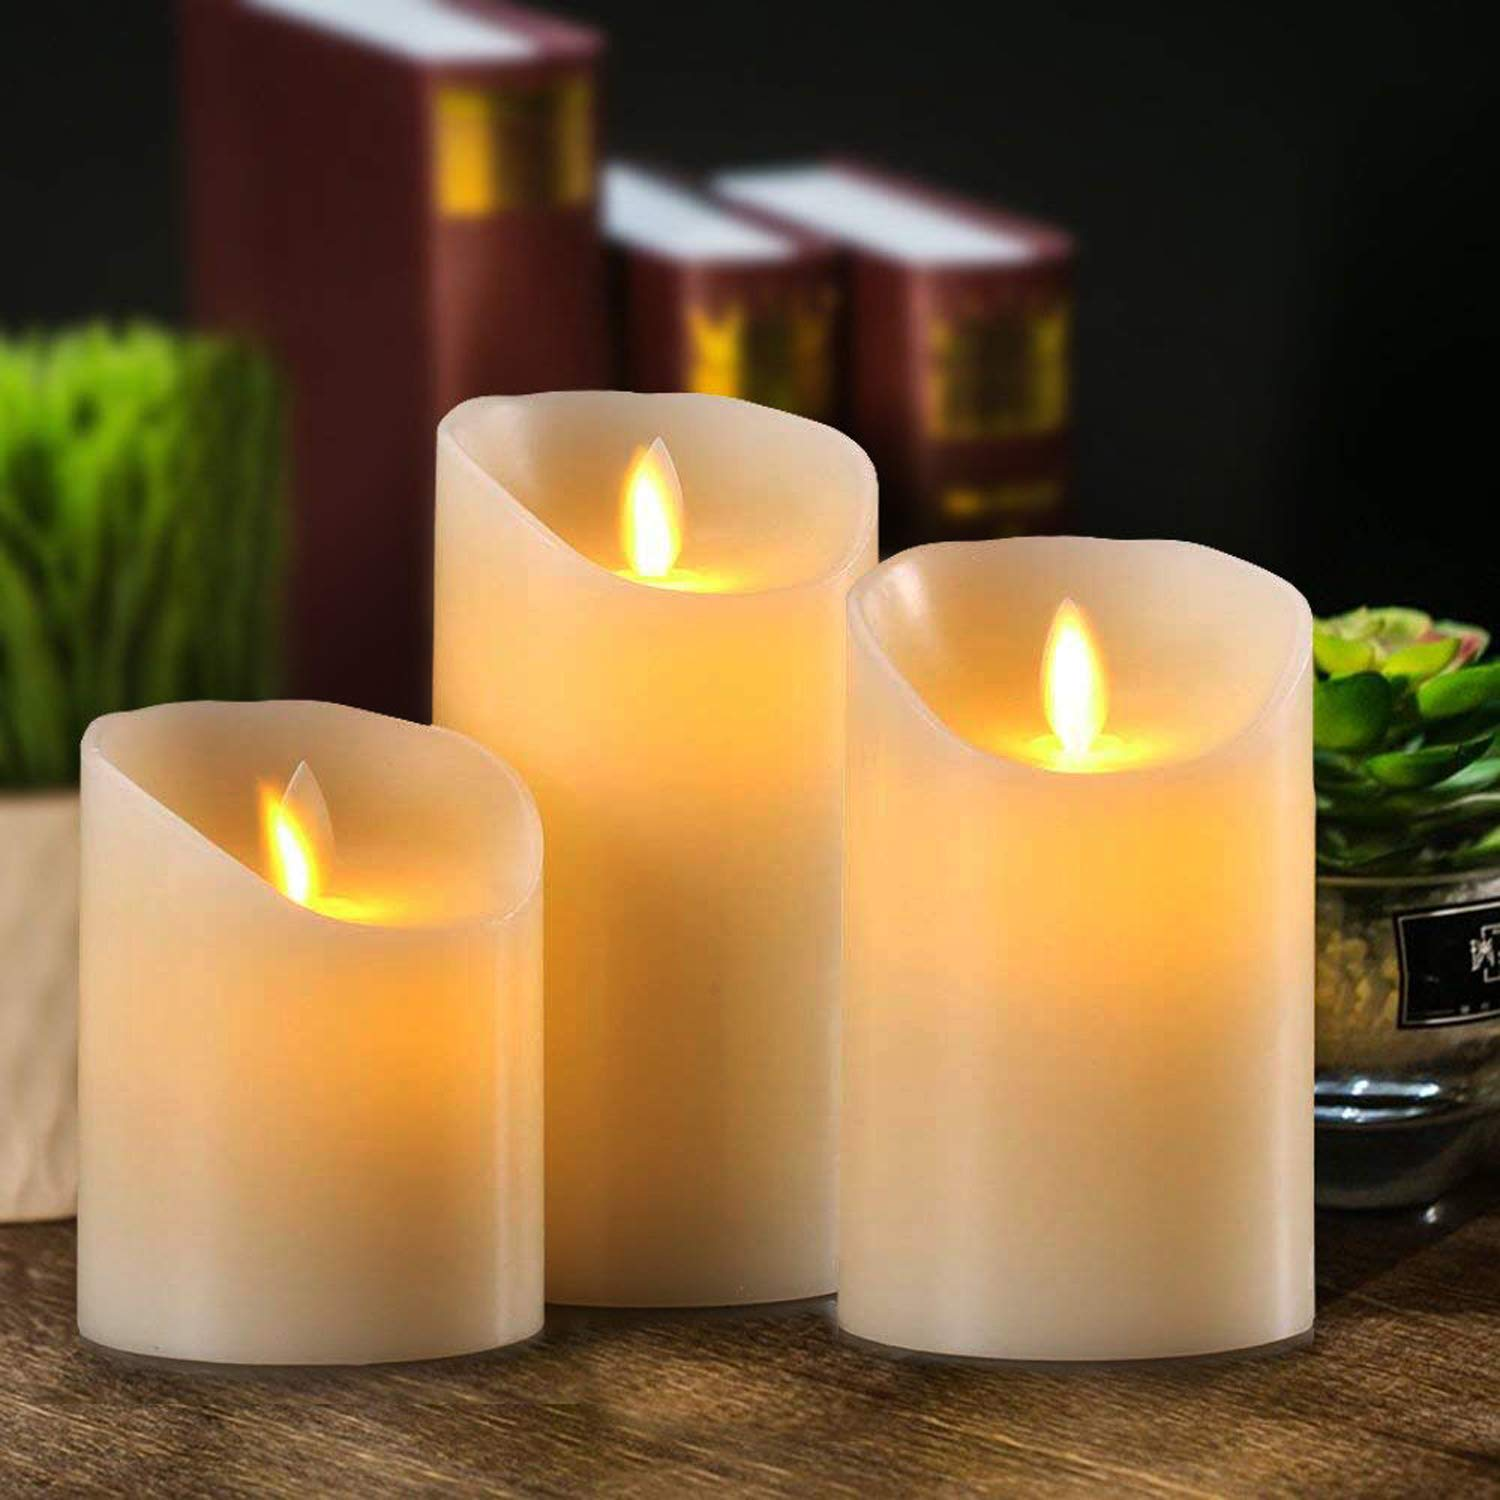 ShengLong Flickering Flameless Candles,Led light Candle with,Set of 3 Ivory Wax Flickering Amber Yellow Flame Xmas Table Dress wax Candle. Auto-Off Timer Remote Control Fake Battery Operated Candles